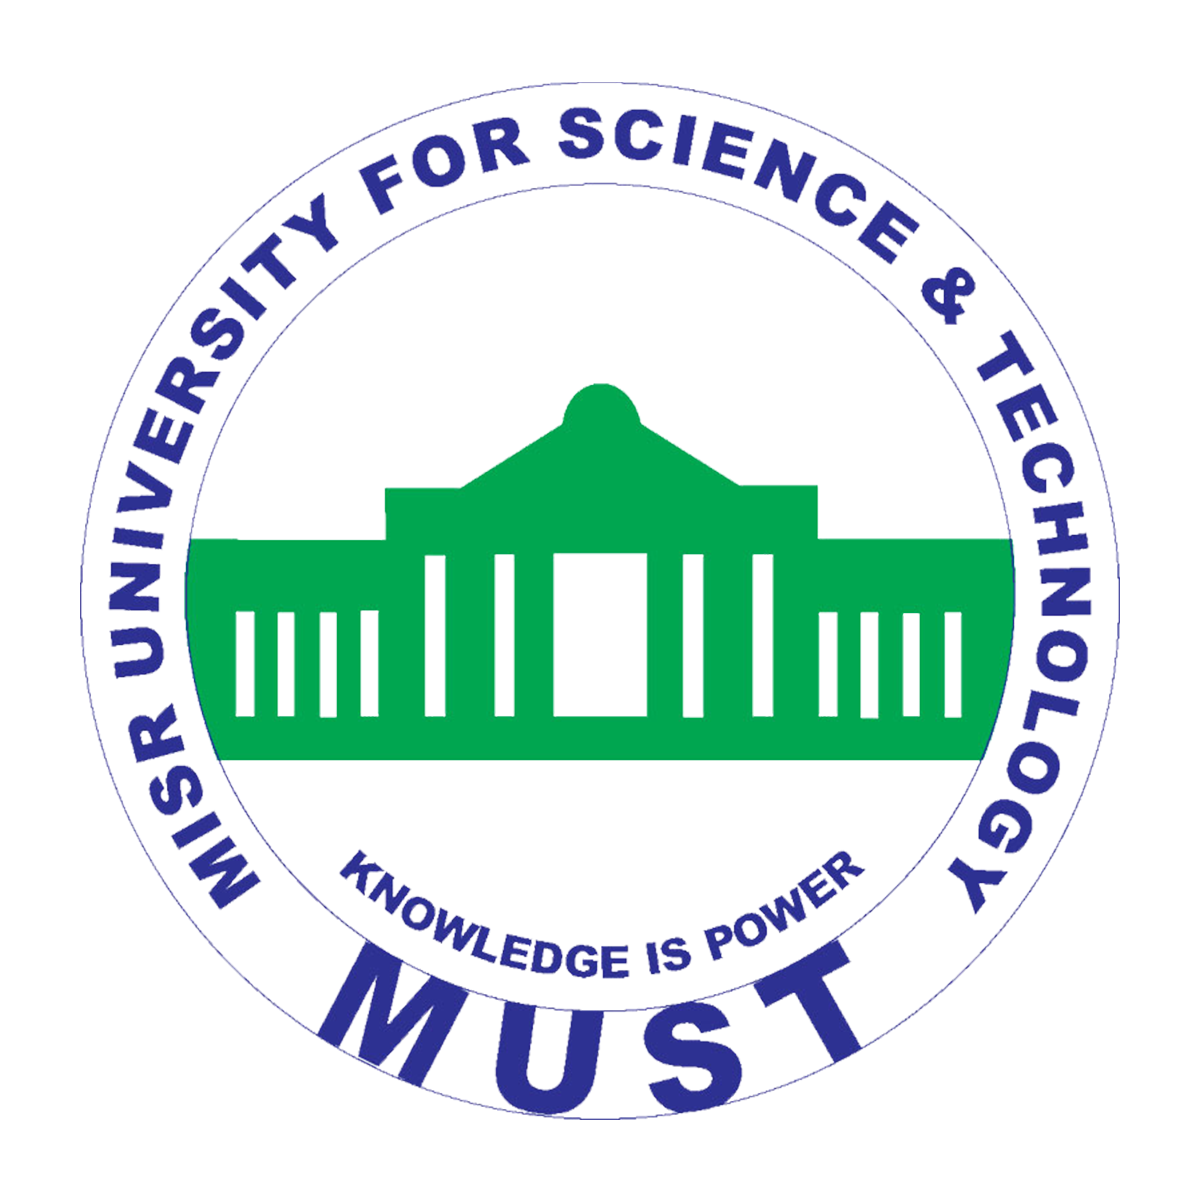 Misr University for Science & Technology MUST